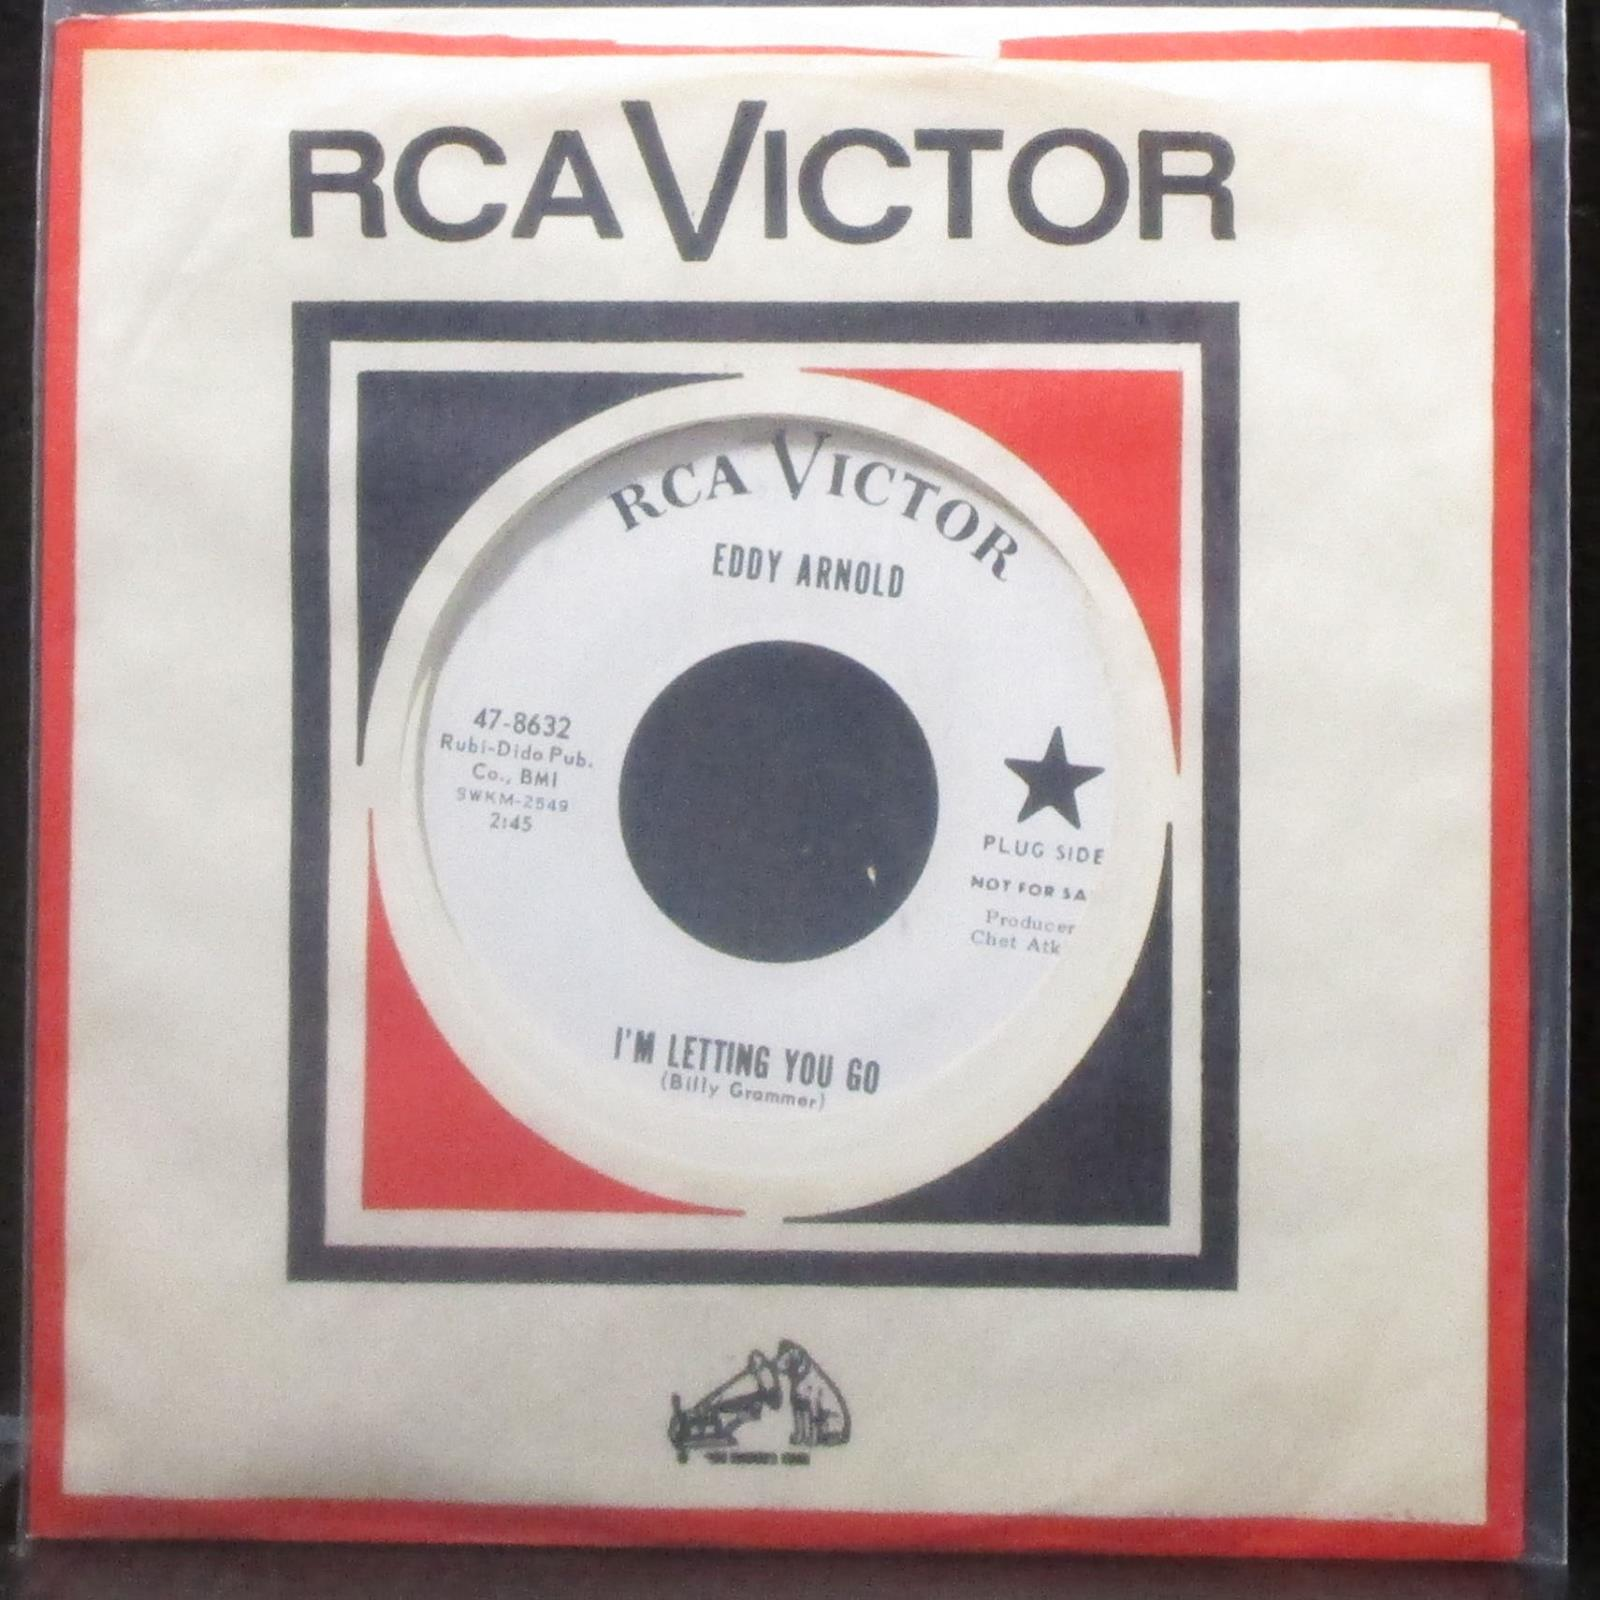 "Eddy Arnold - I'm Letting You Go / The Days Gone By 7"" Mint- Promo Vinyl 45 RCA"